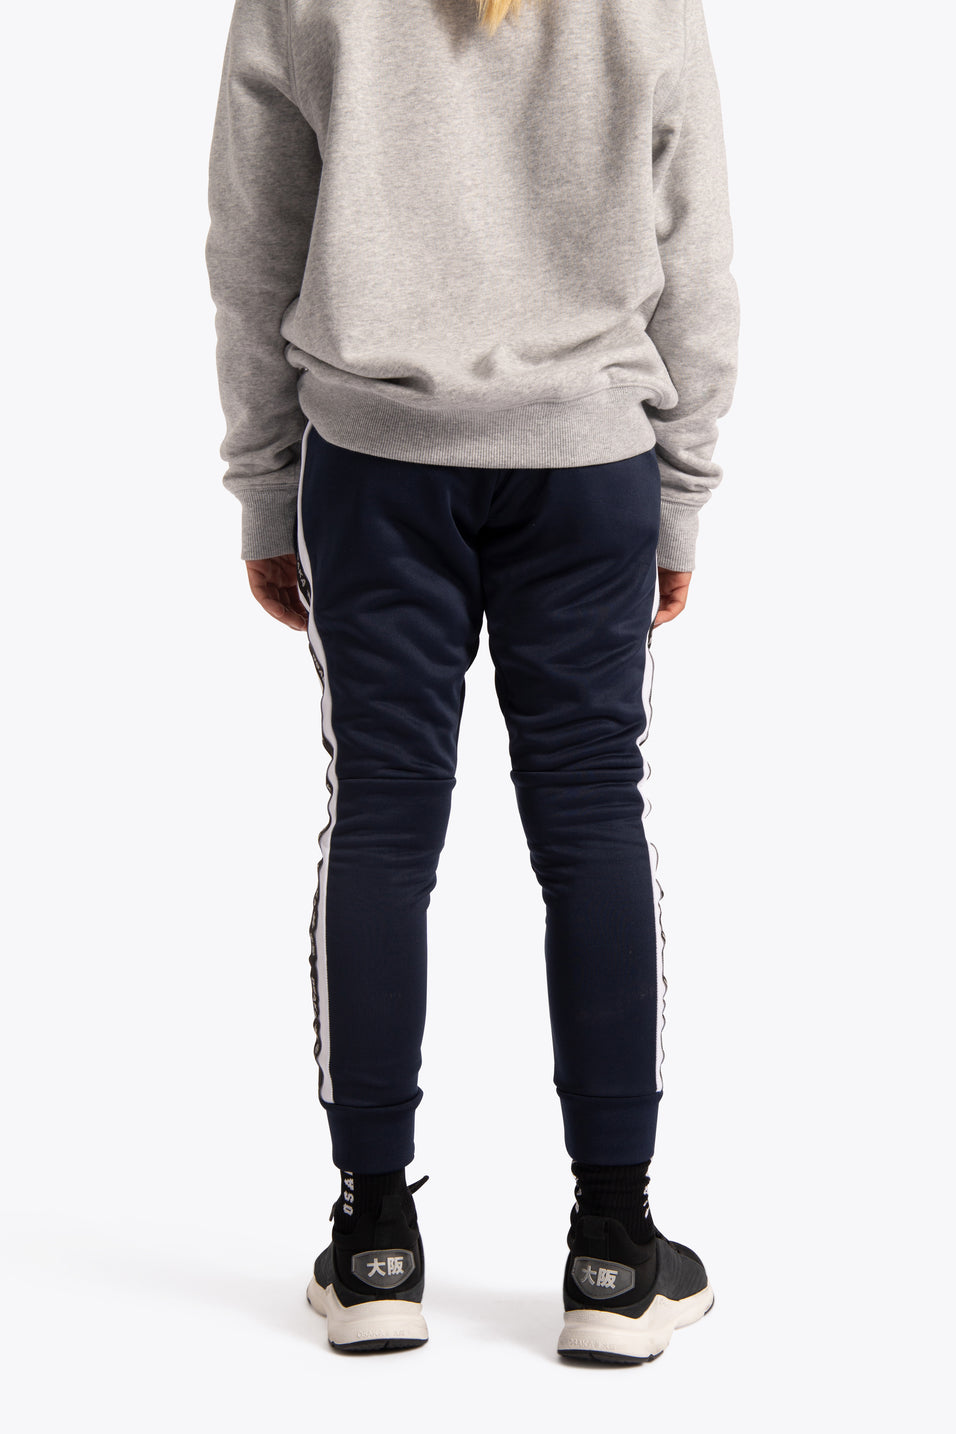 Deshi Training Sweatpants - Navy